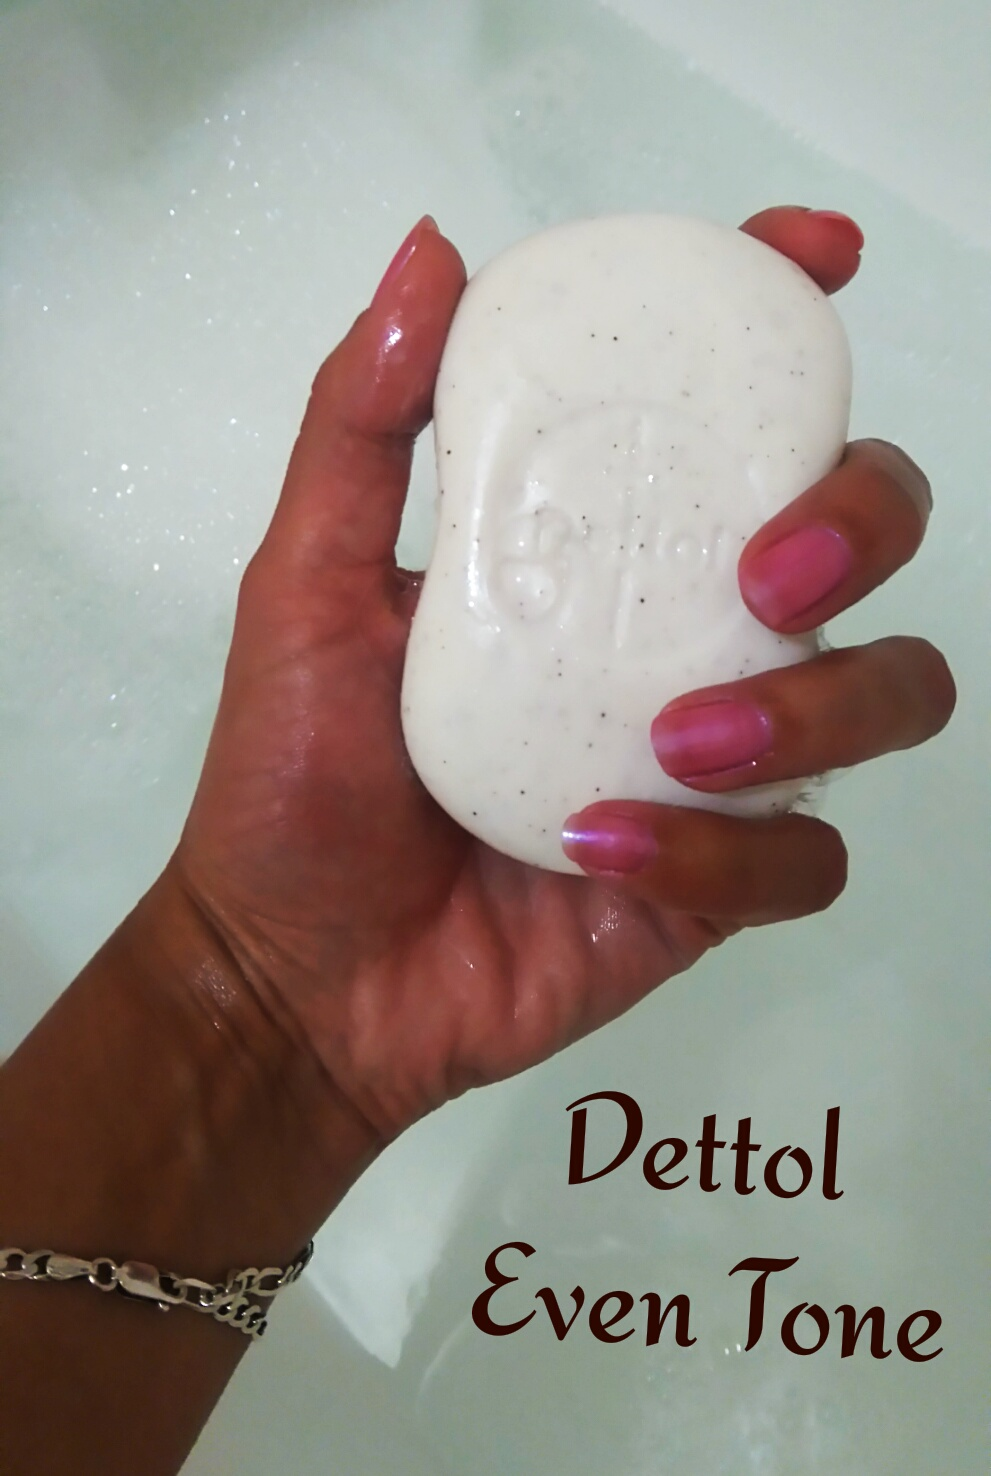 Dettol on touch porno